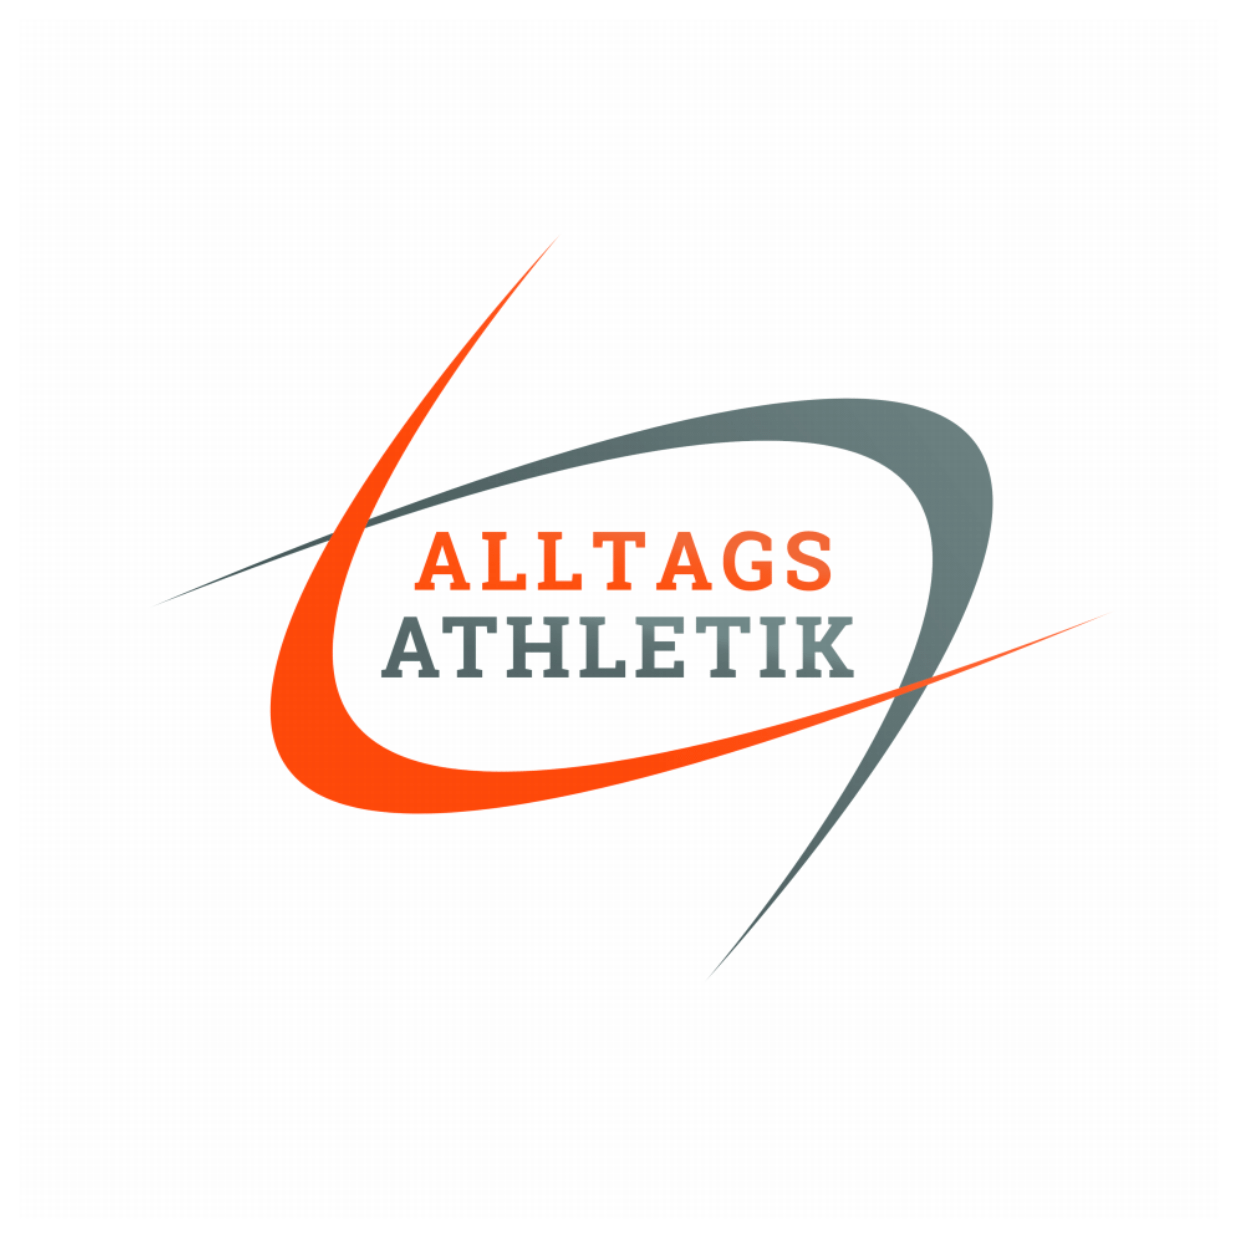 Alltags Athletik logo